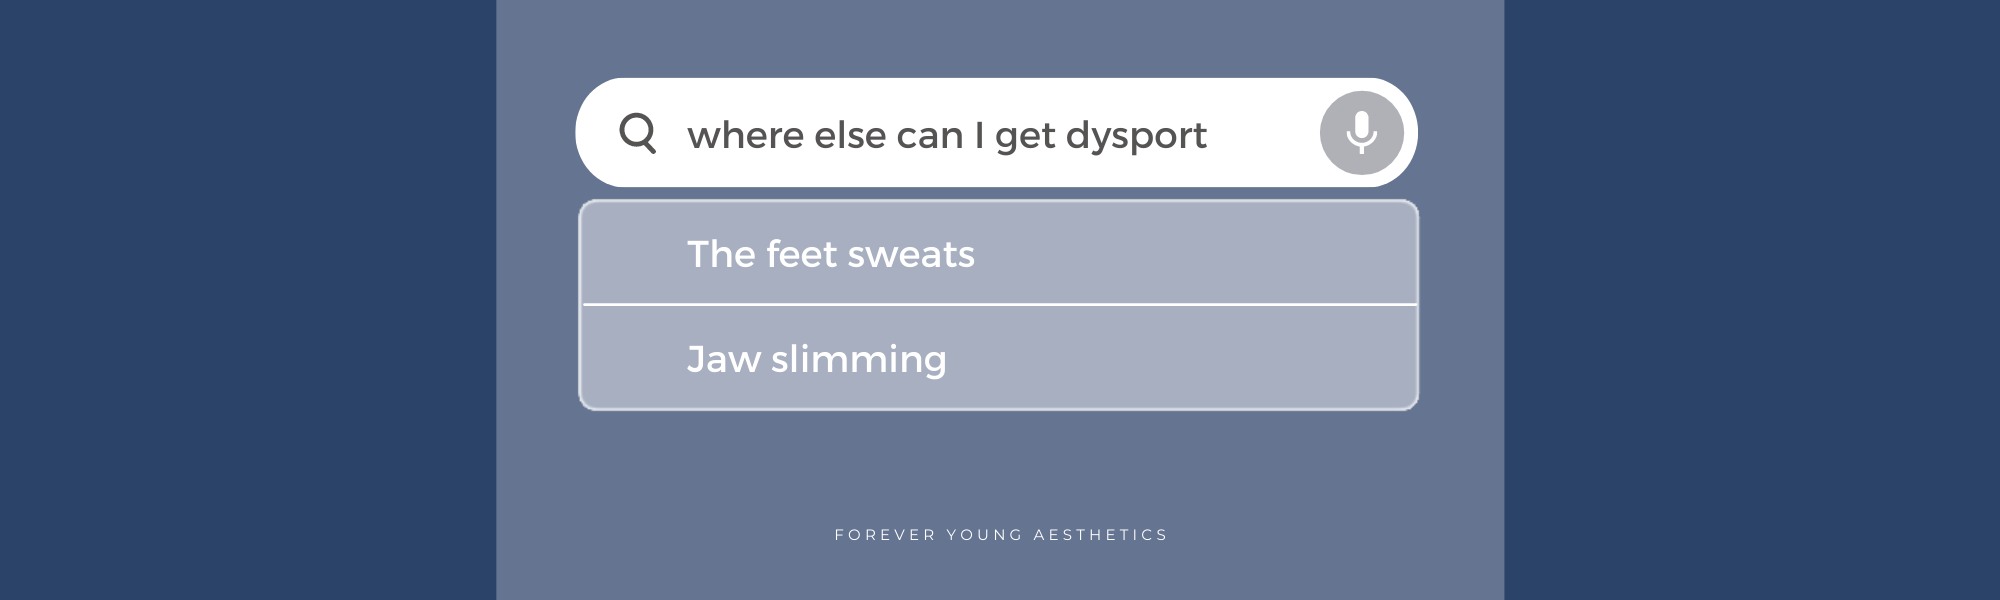 Dysport FAQ at Forever Young Aesthetics in South Tampa FL